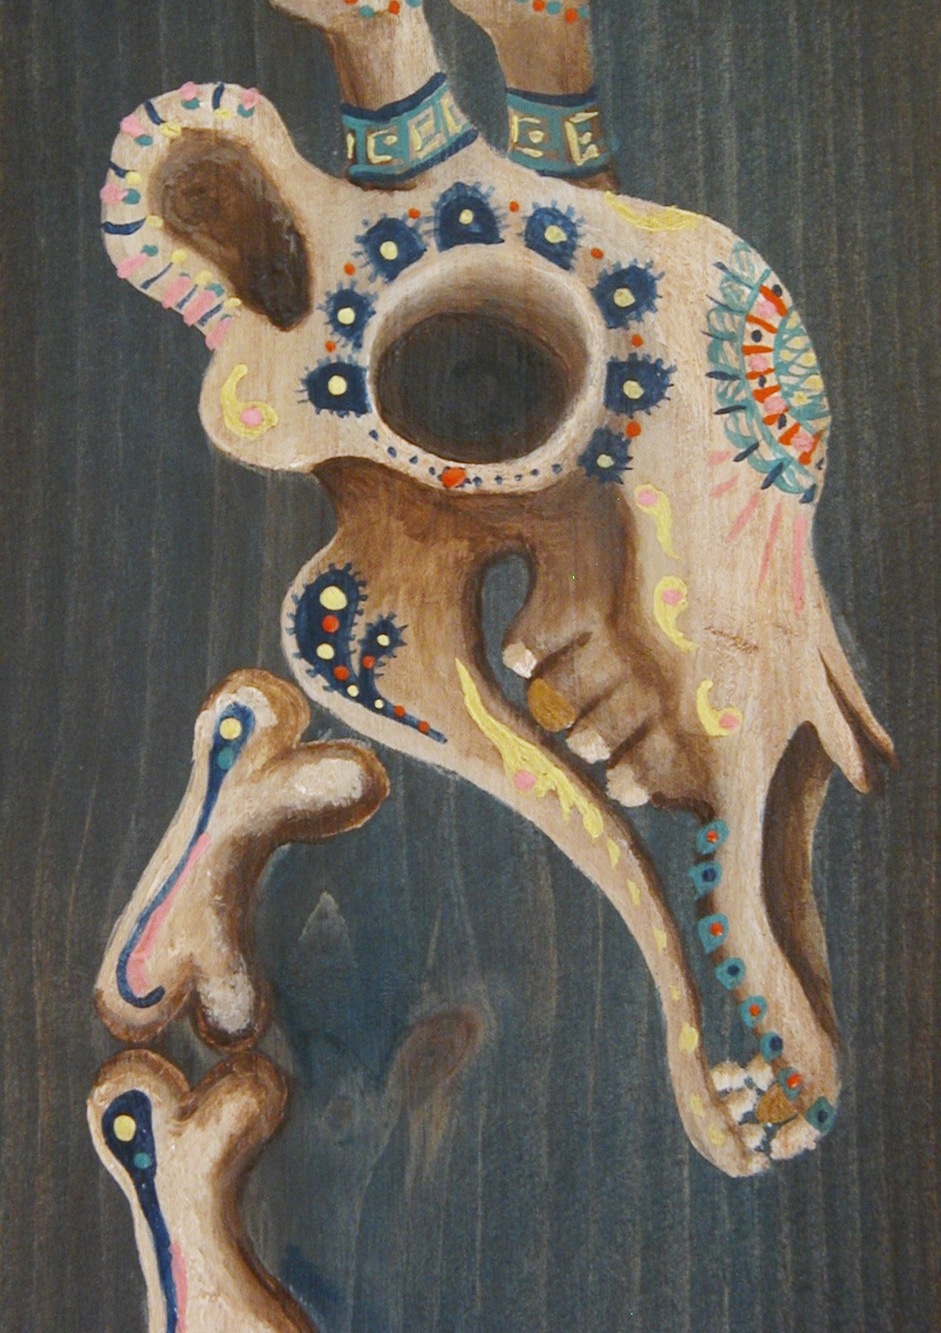 SEA GIRAFFE  This sea giraffe skeleton was painted with acrylic on a pine wood panel in the dia de los muertos style.